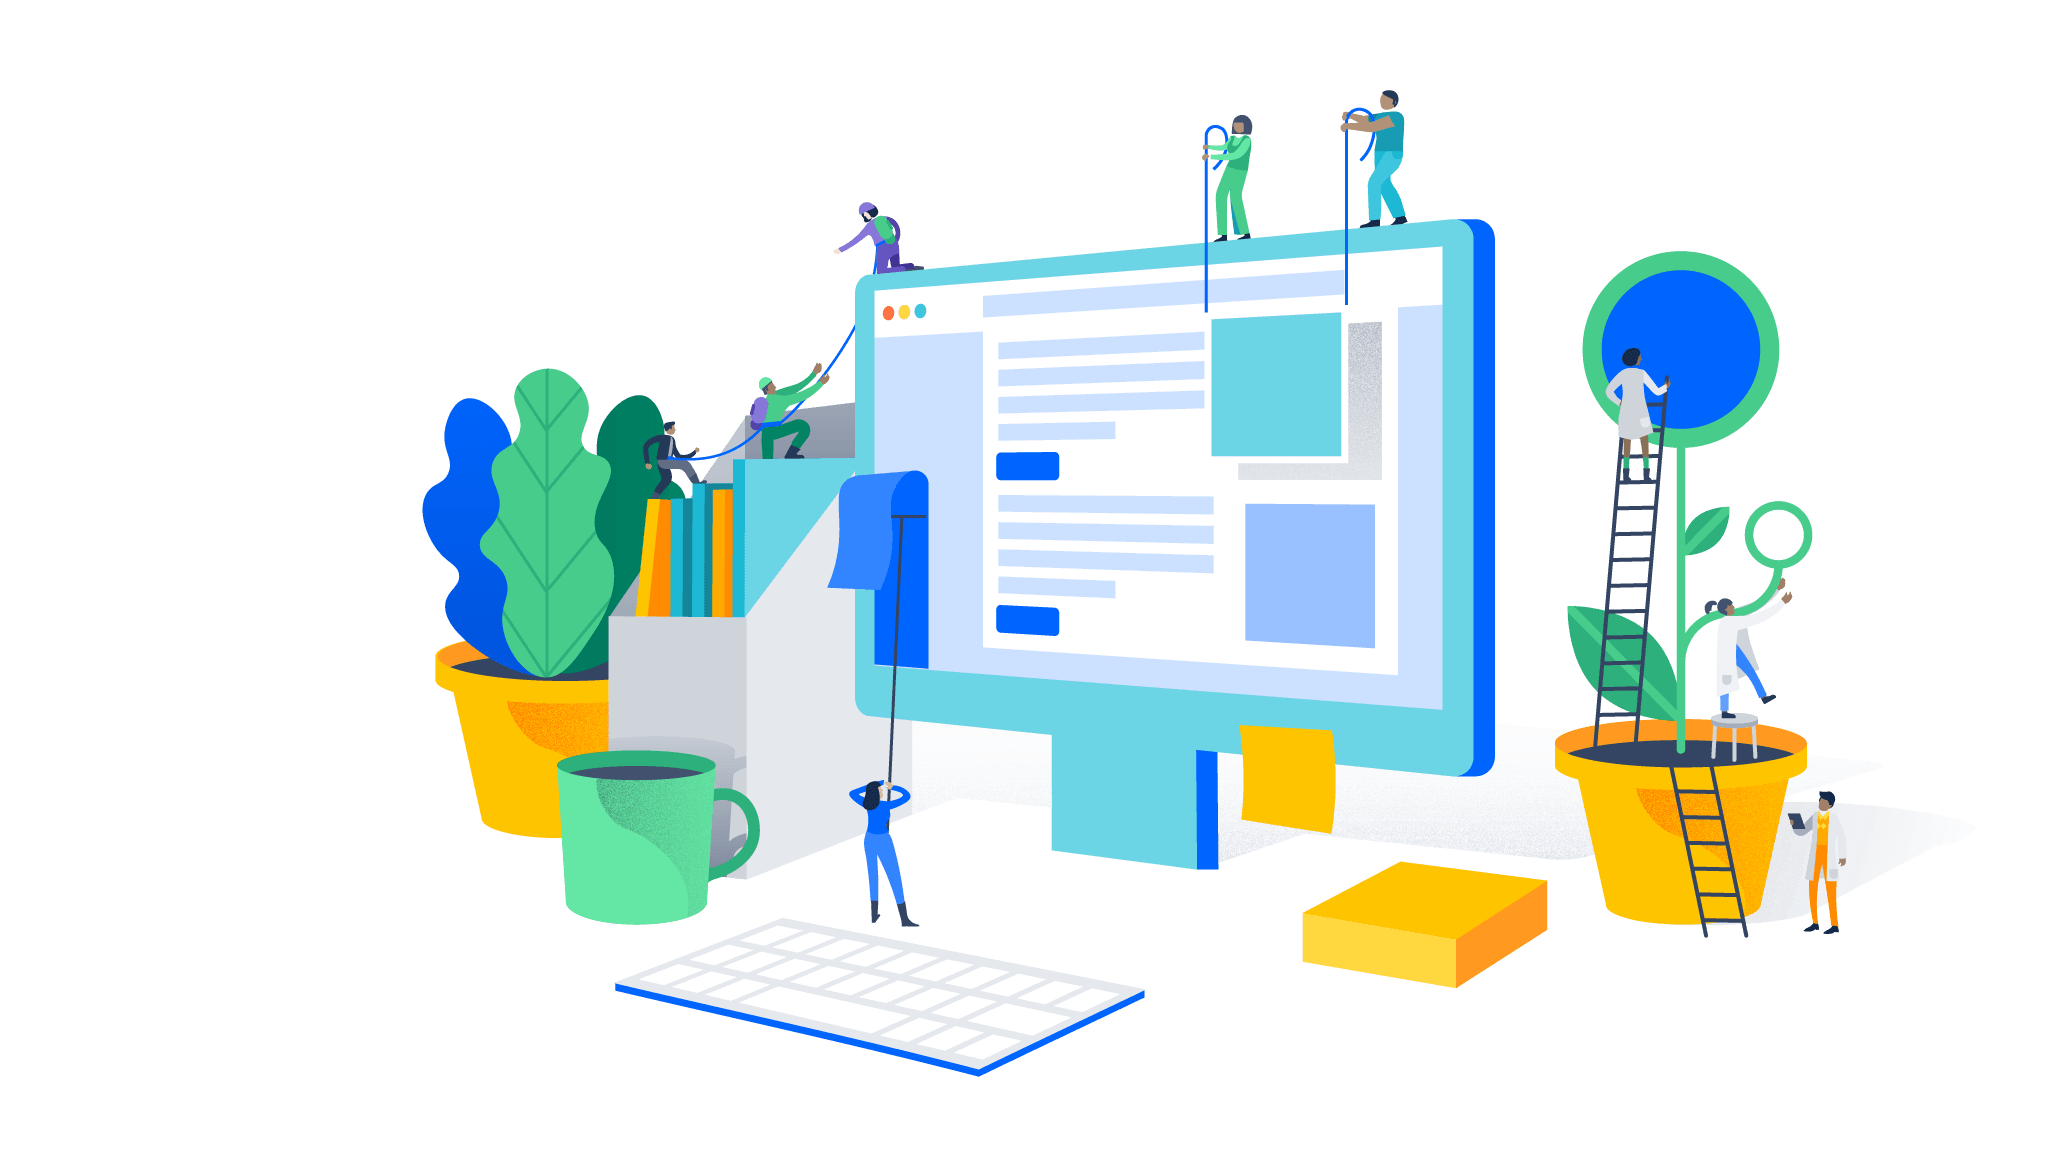 Atlassian software development and. Collaboration clipart business support